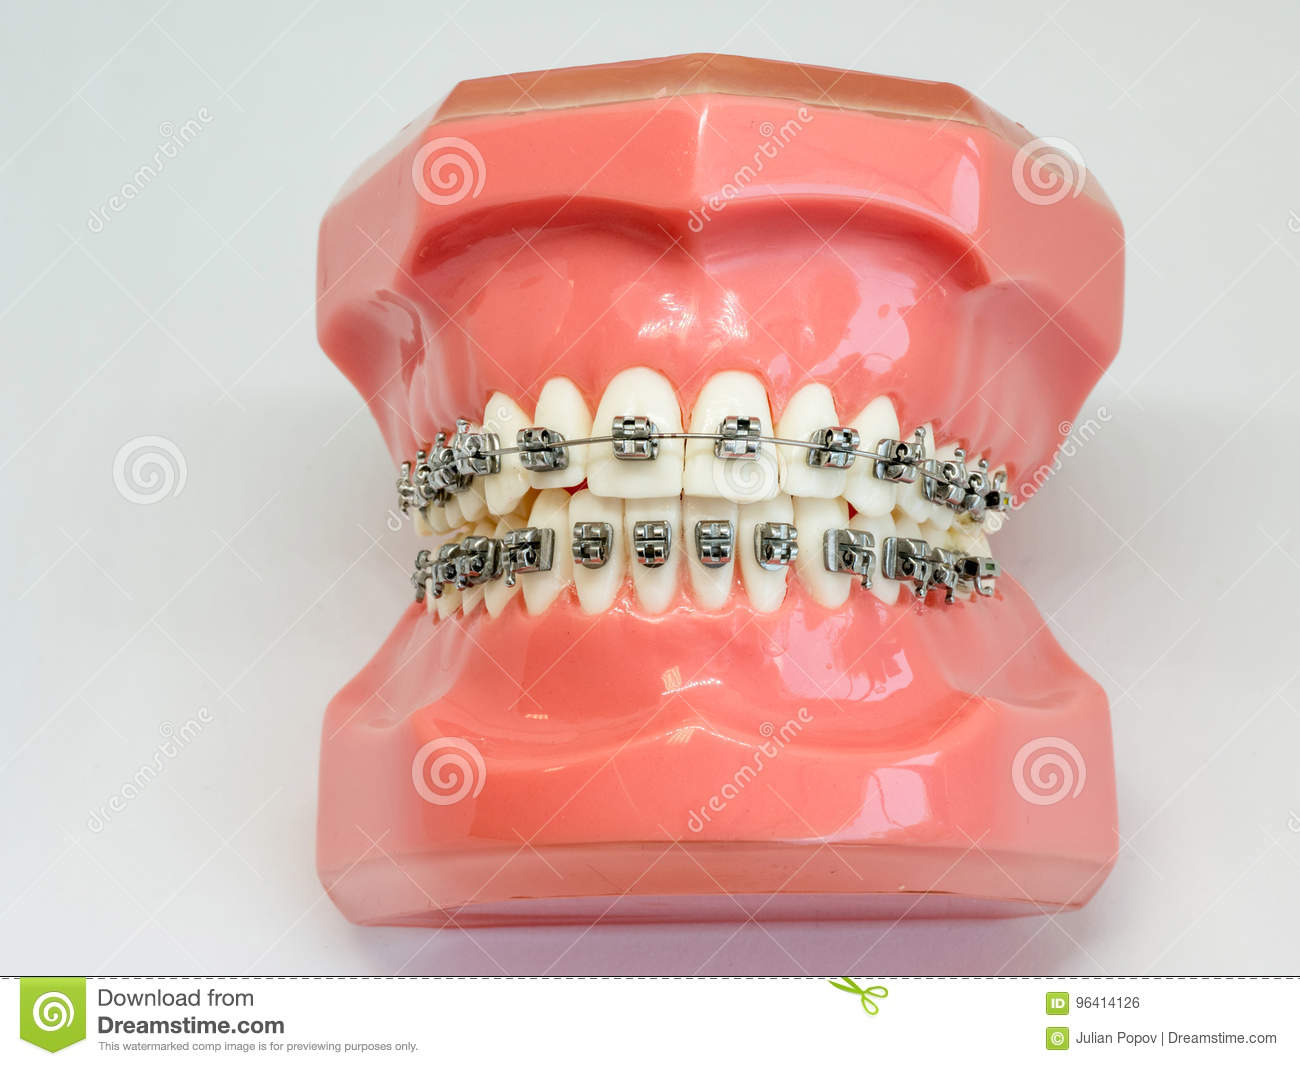 Remarkable Artificial Model Of Human Jaw With Wire Colorful Braces Attached Wiring 101 Orsalhahutechinfo